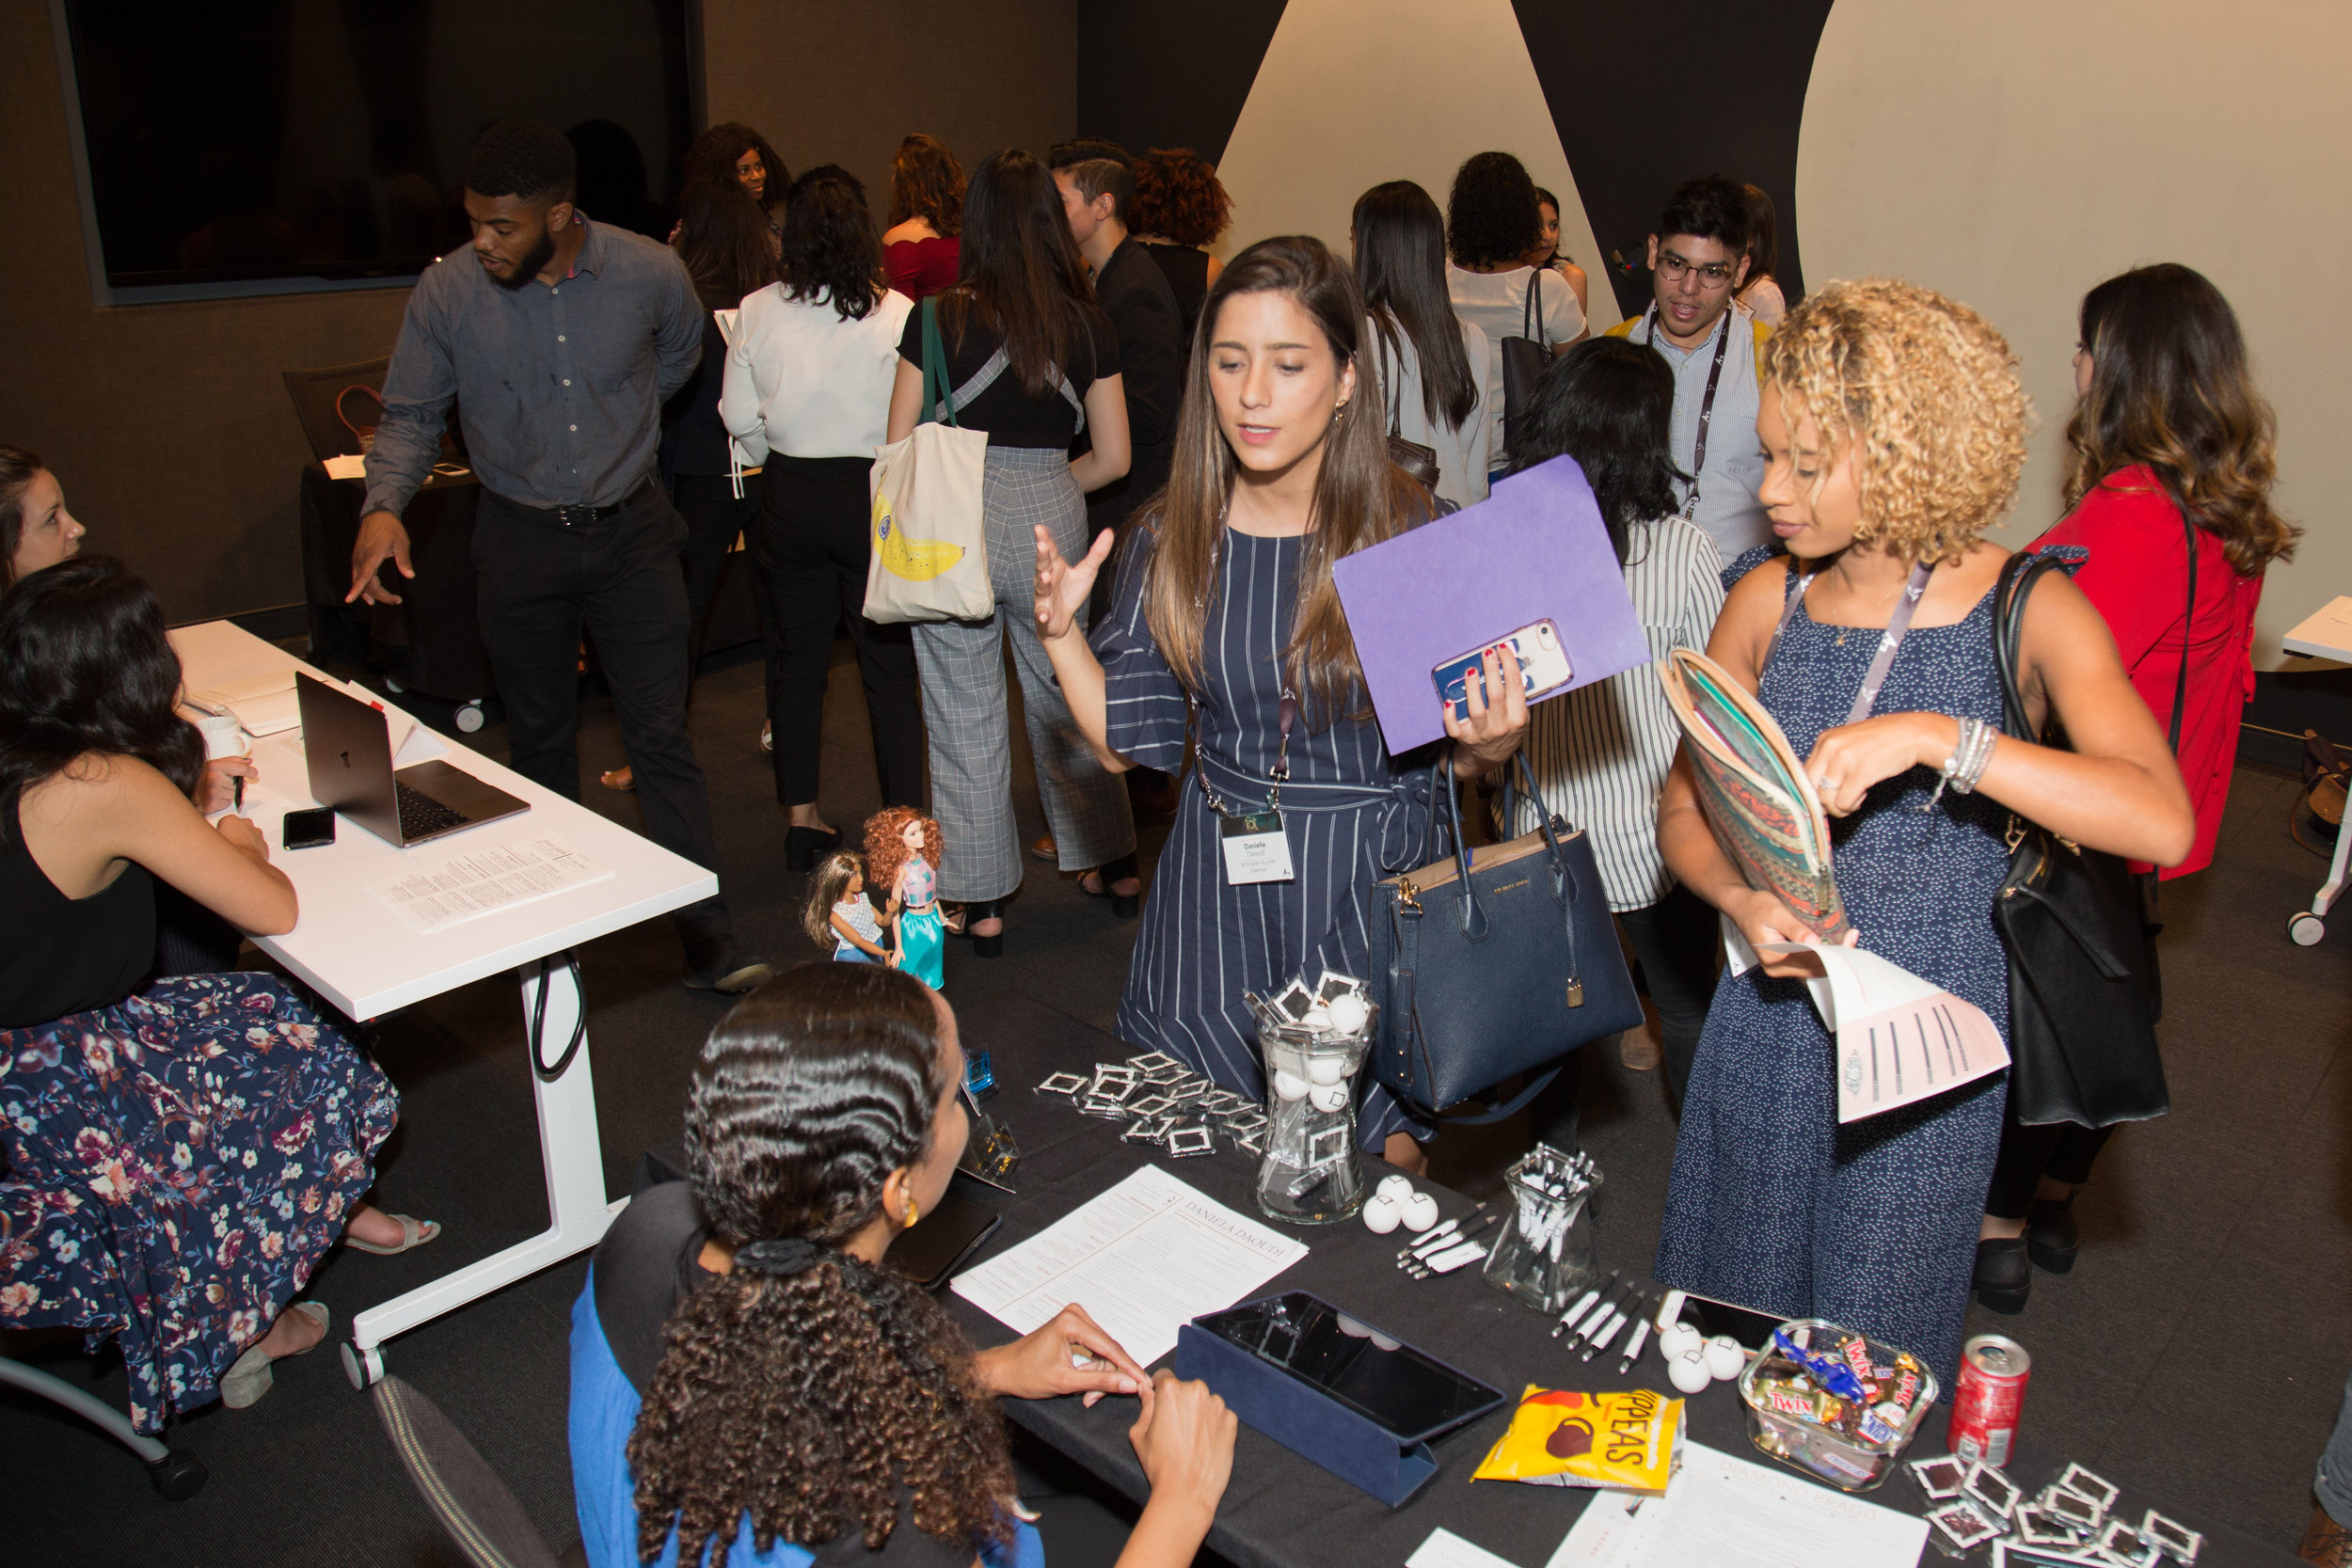 4As_MAIP_FOT_Career_Fair_2018_Margarita_Corporan-17.jpg